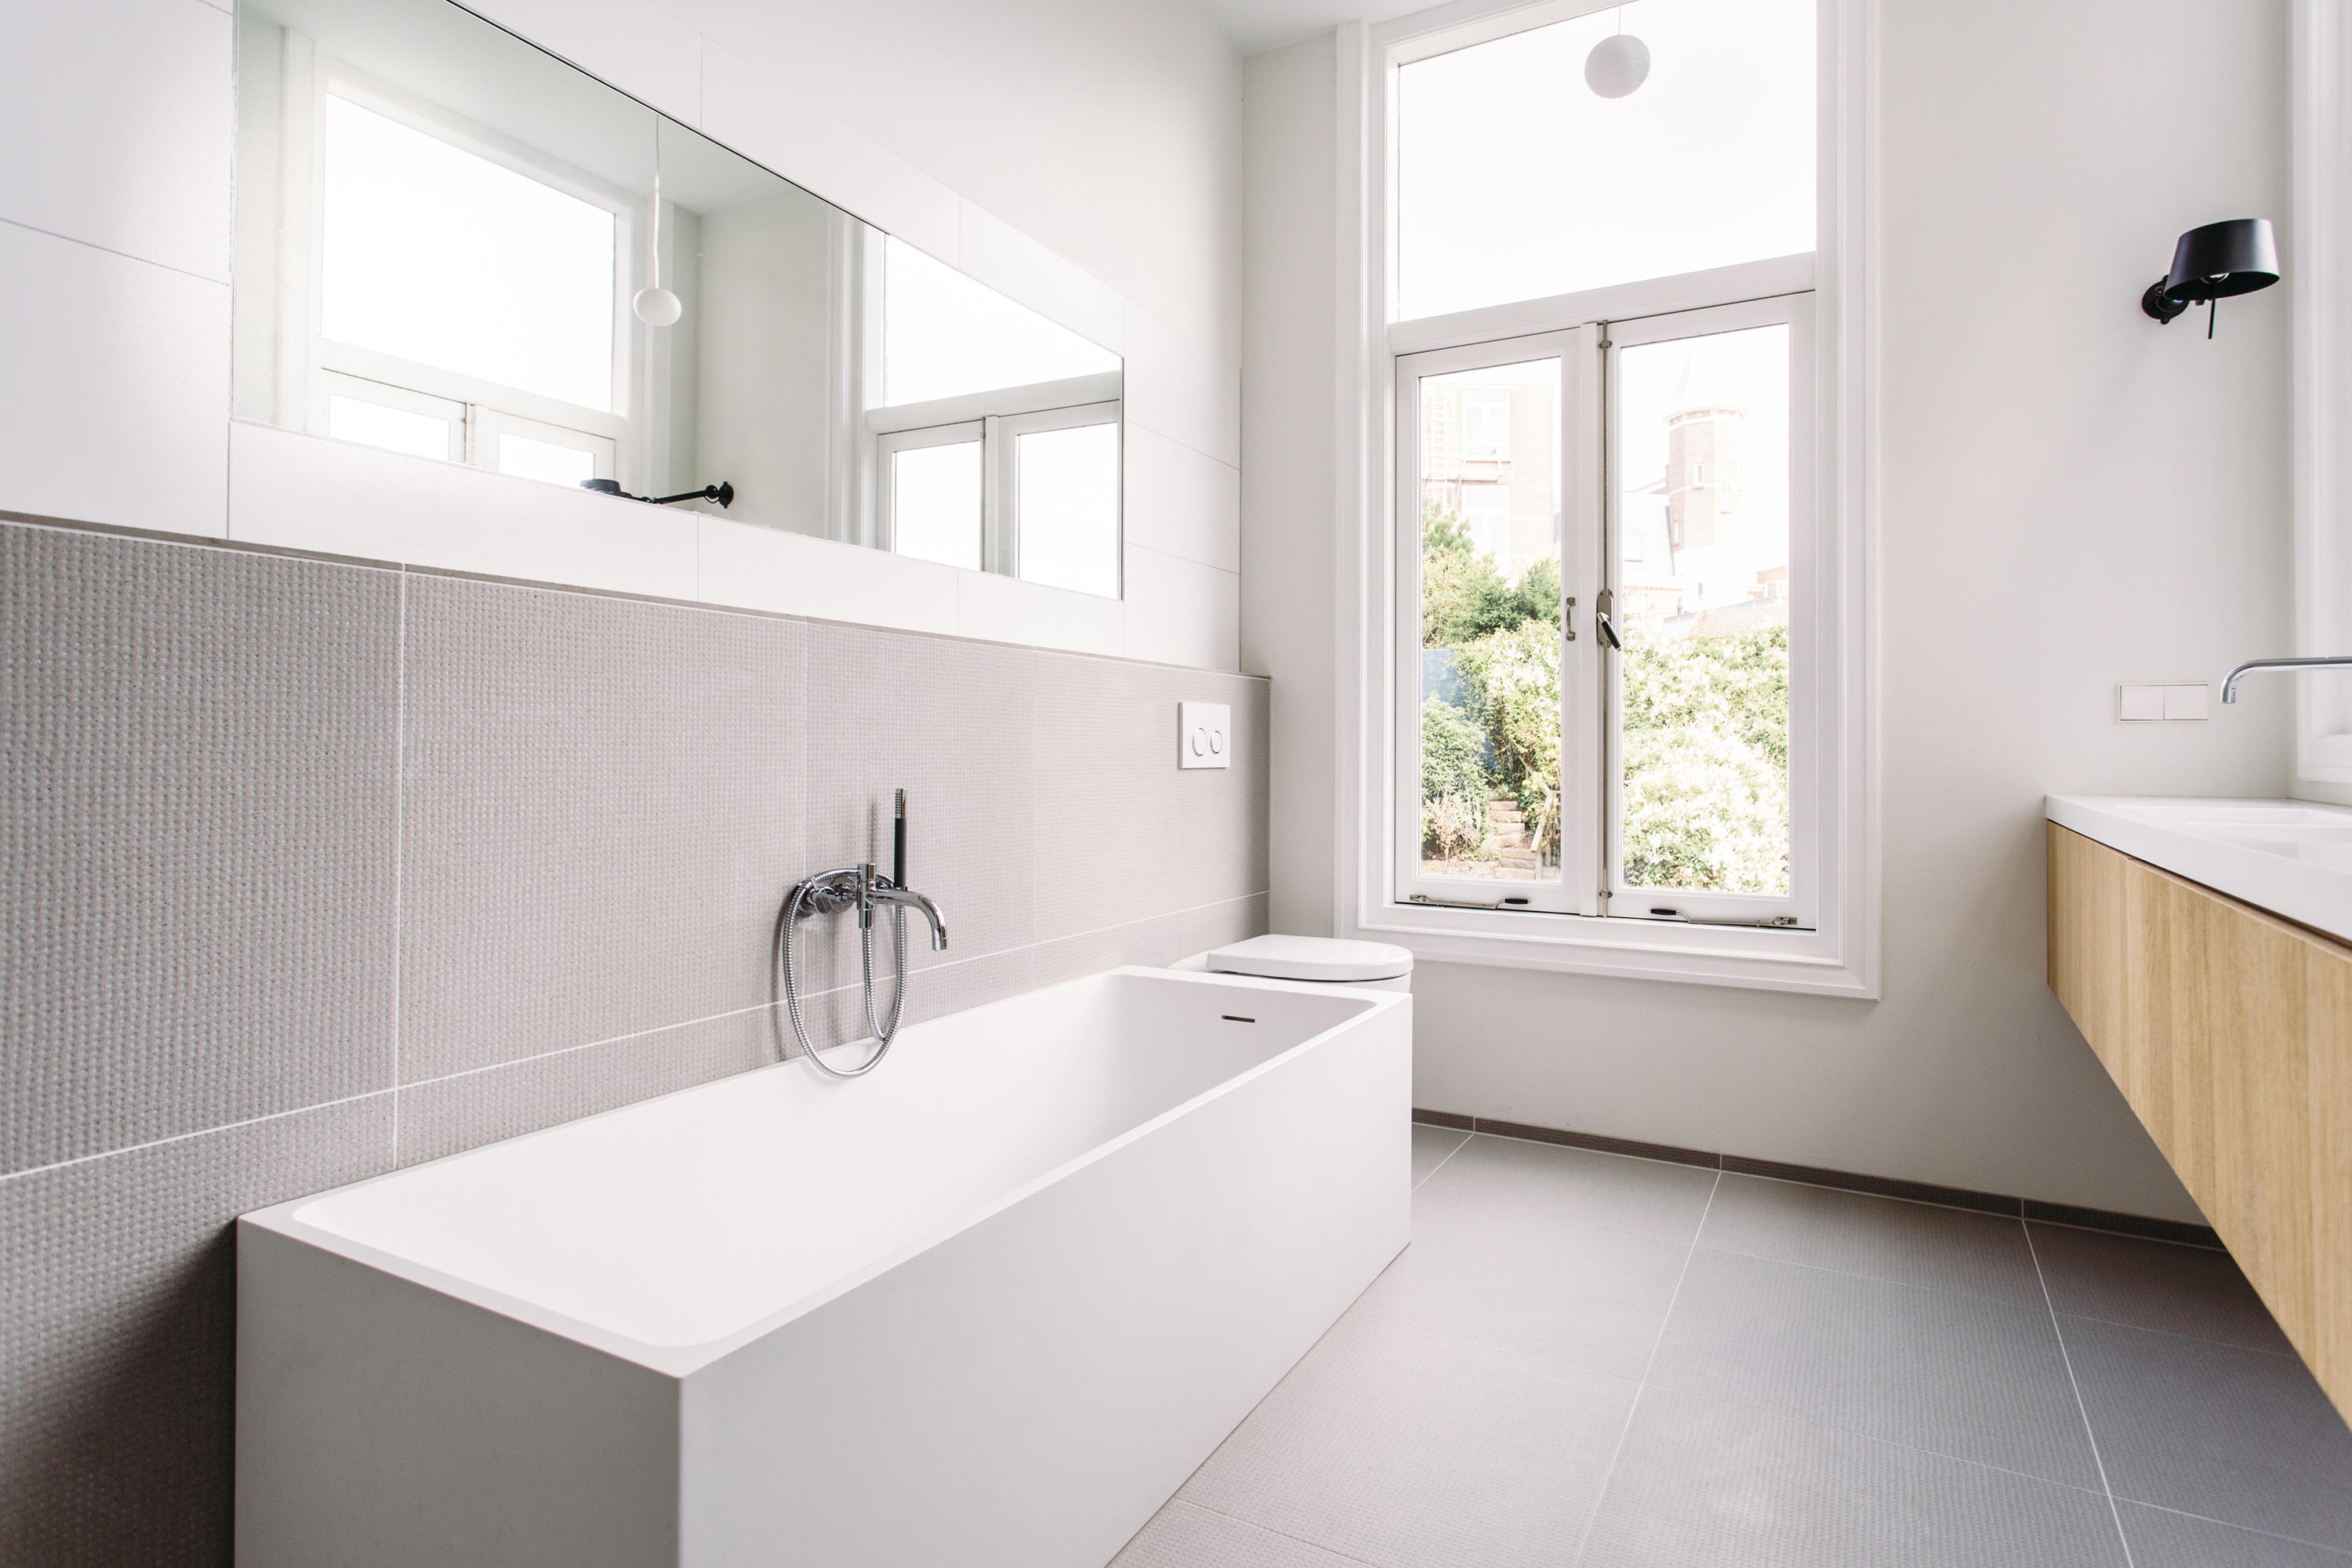 AXIS BATH - Bathtubs from Not Only White B.V. | Architonic